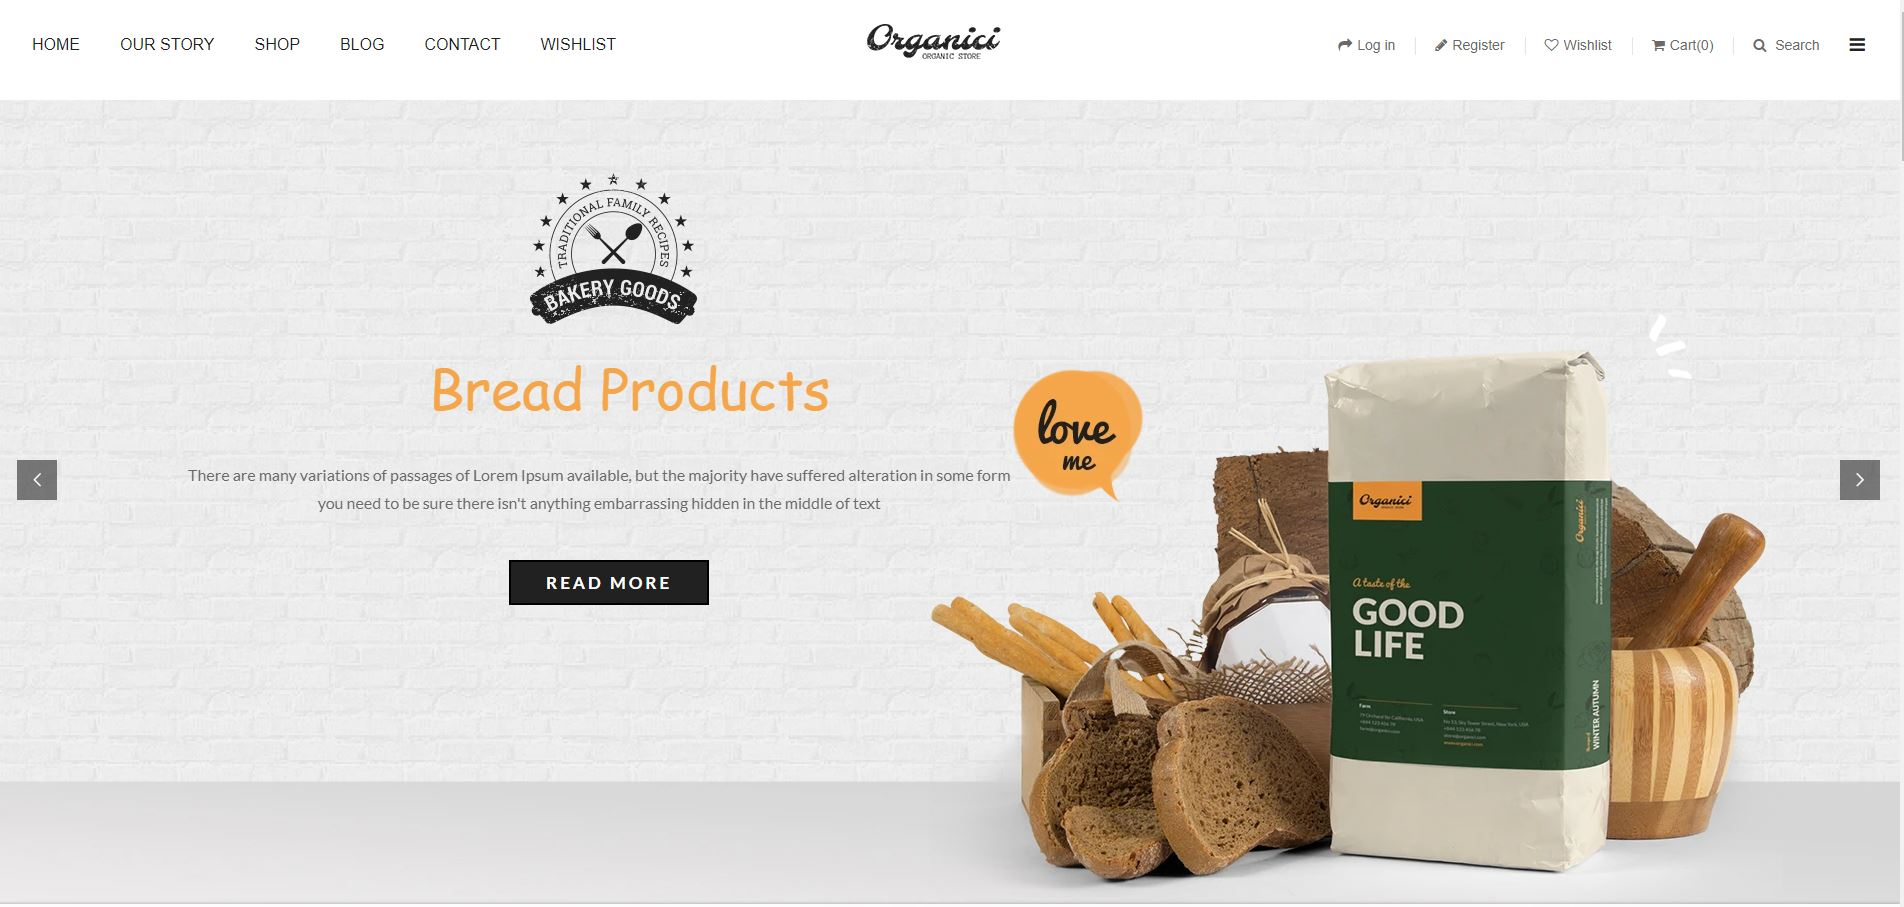 Organici  Fruits and vegetables Shopify Theme